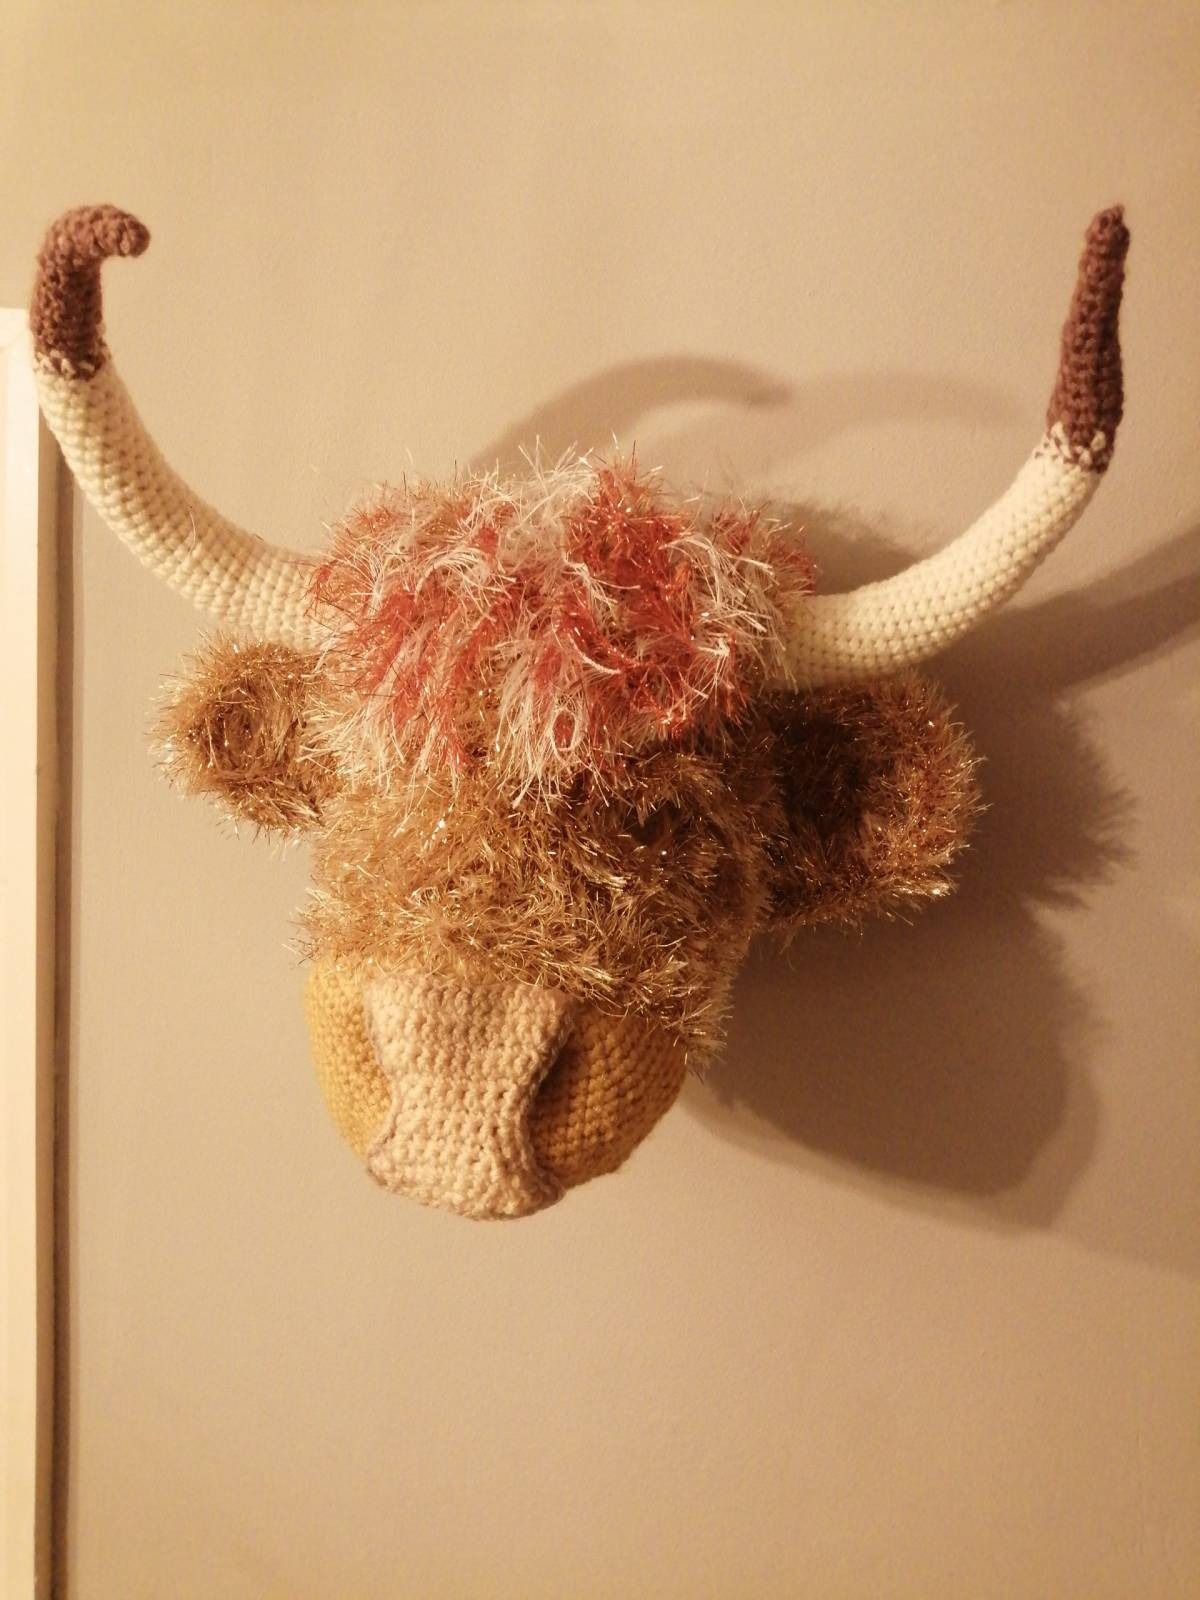 Crochet Highland Cow Amigurumi Pattern Crafters Review for Cottontail and Whiskers by Debbie Crawley